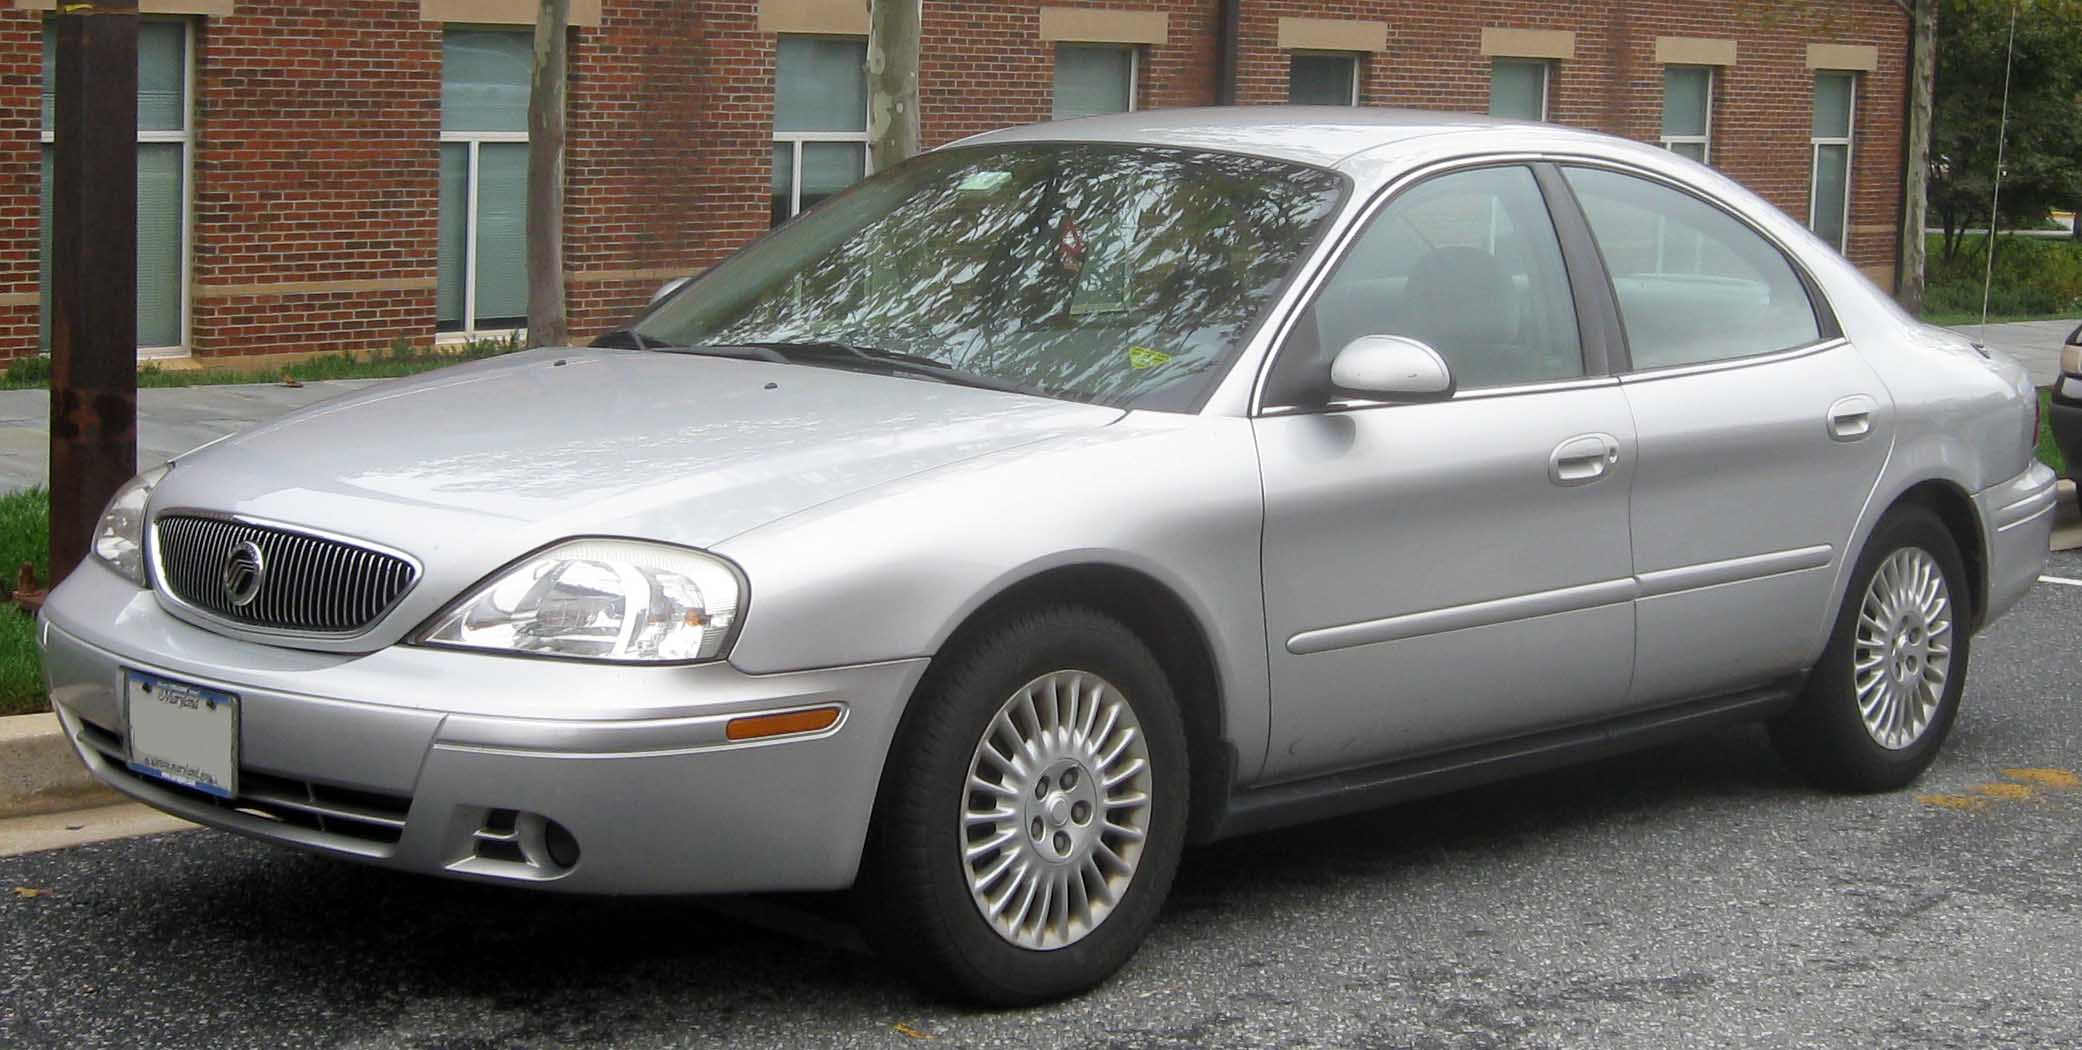 Mercury Sable #7